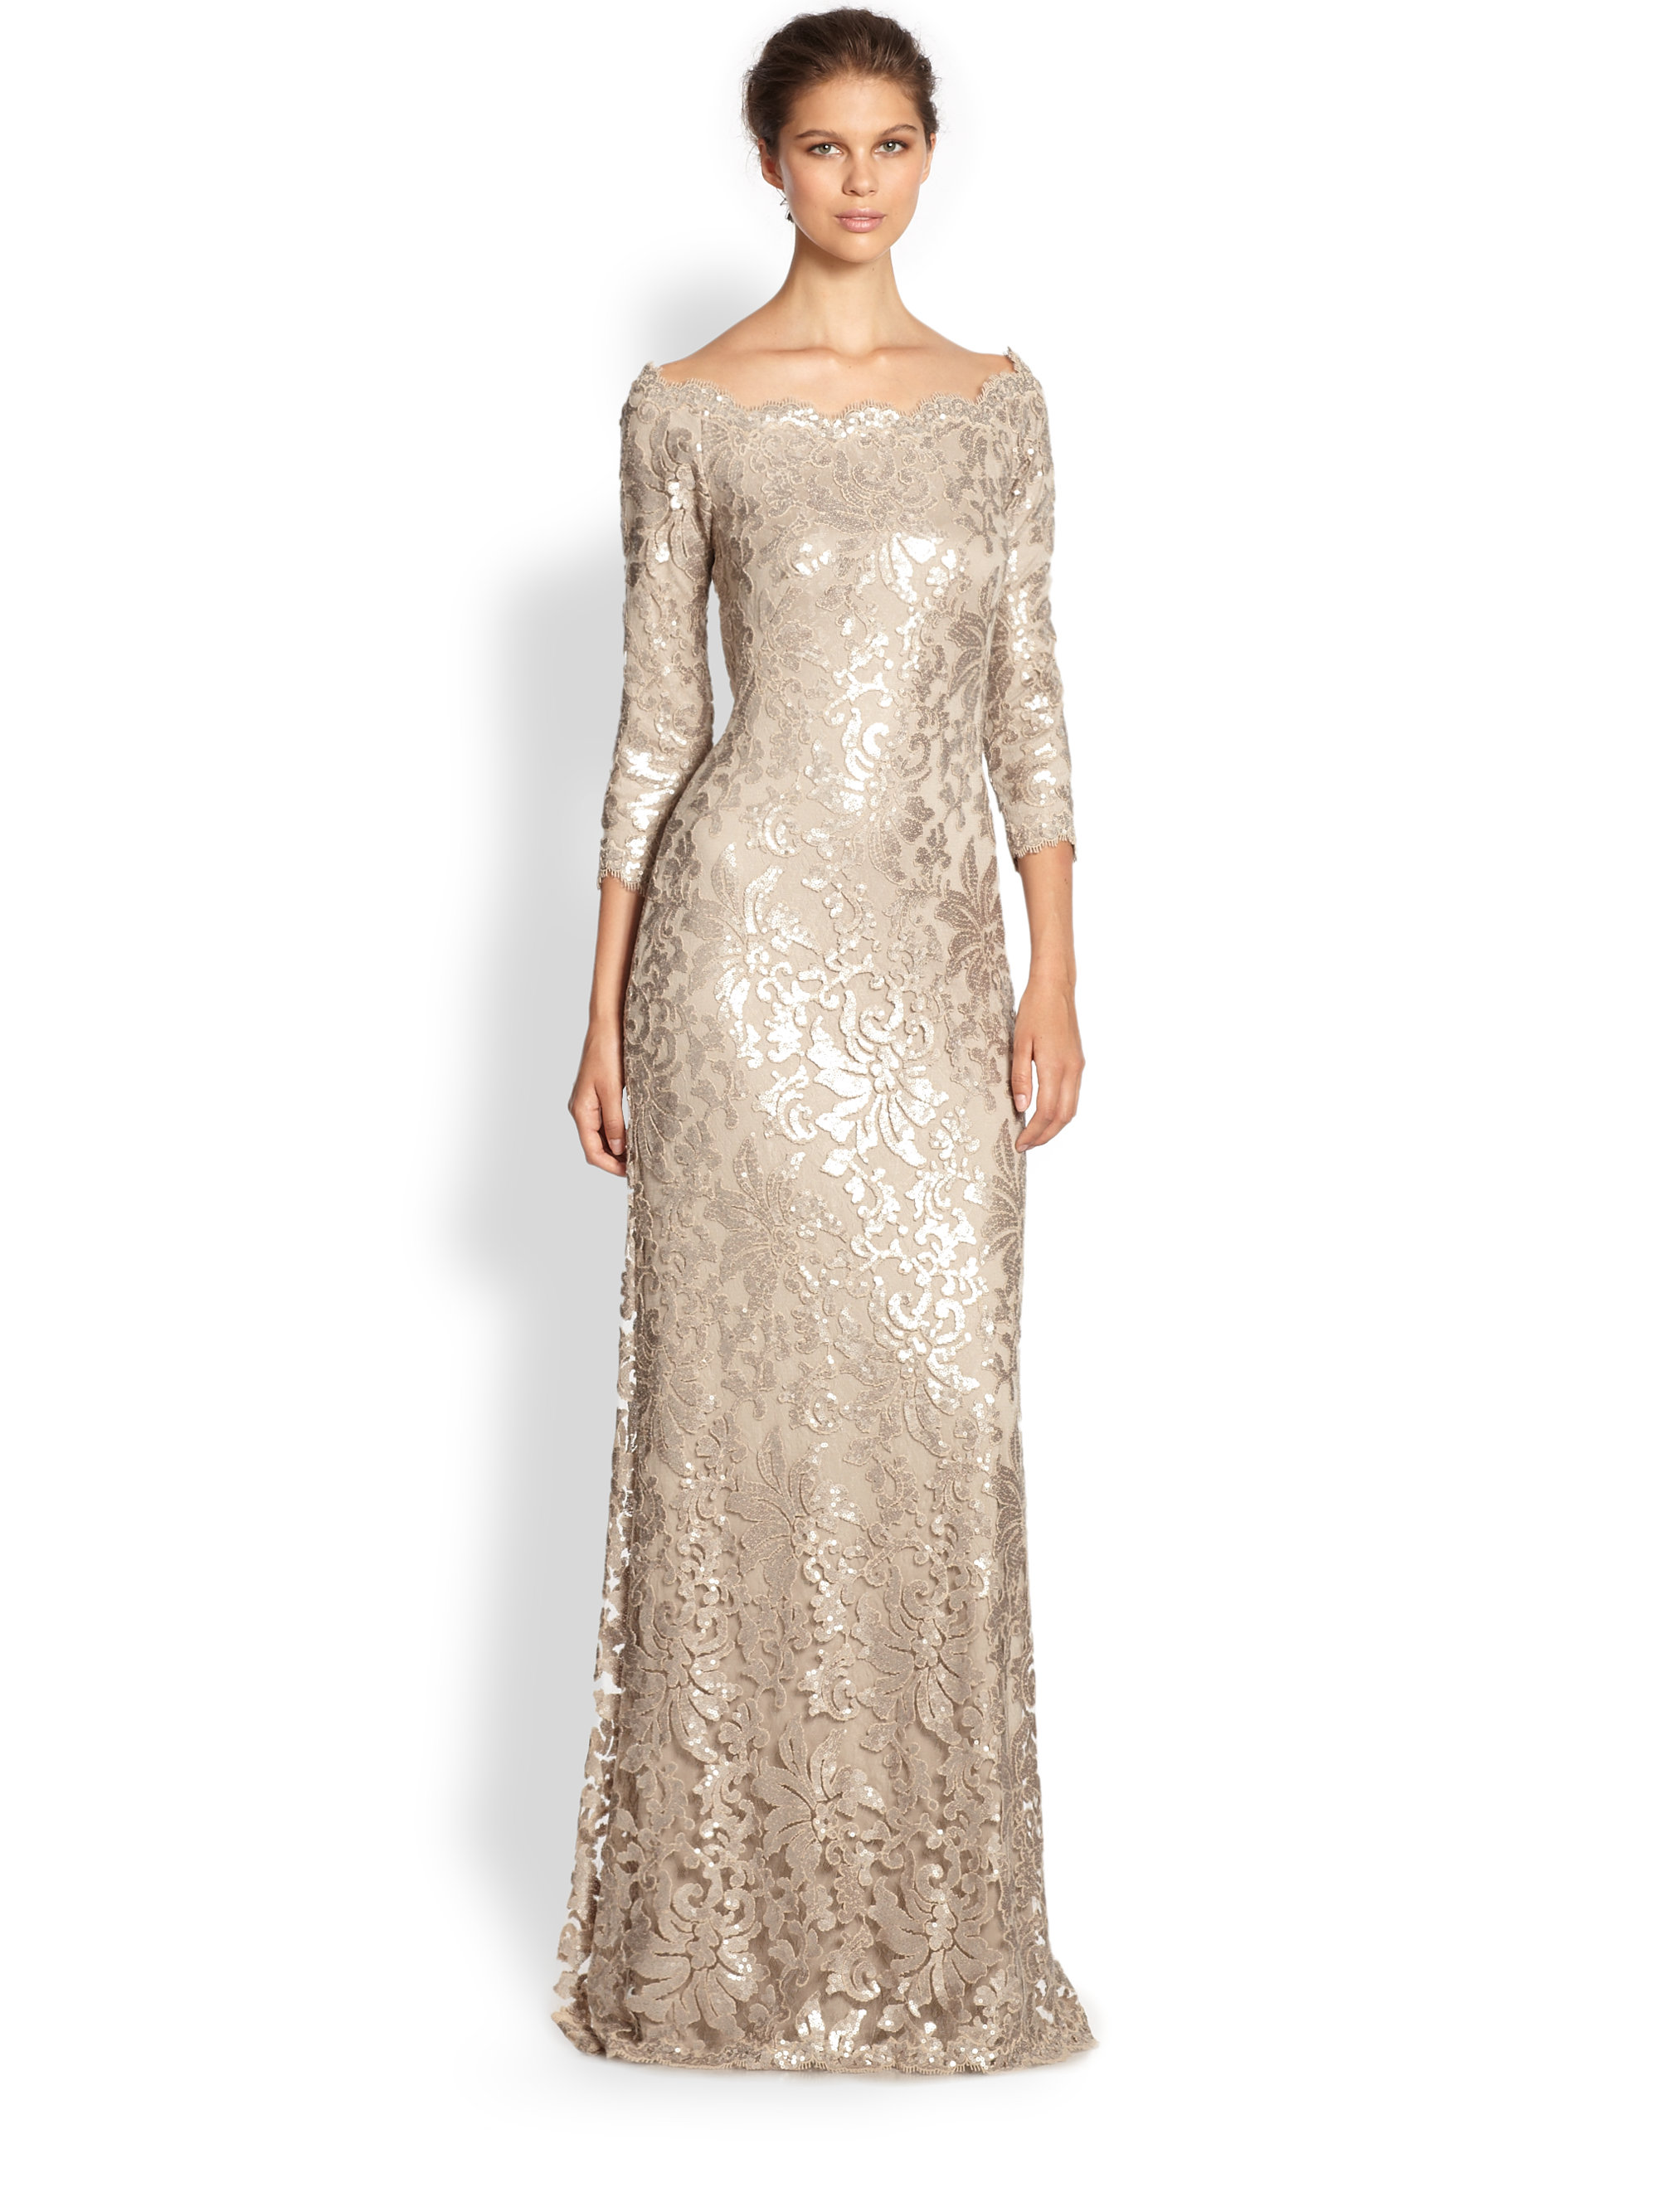 Lyst Tadashi Shoji Sequined Lace Boatneck Gown In Metallic